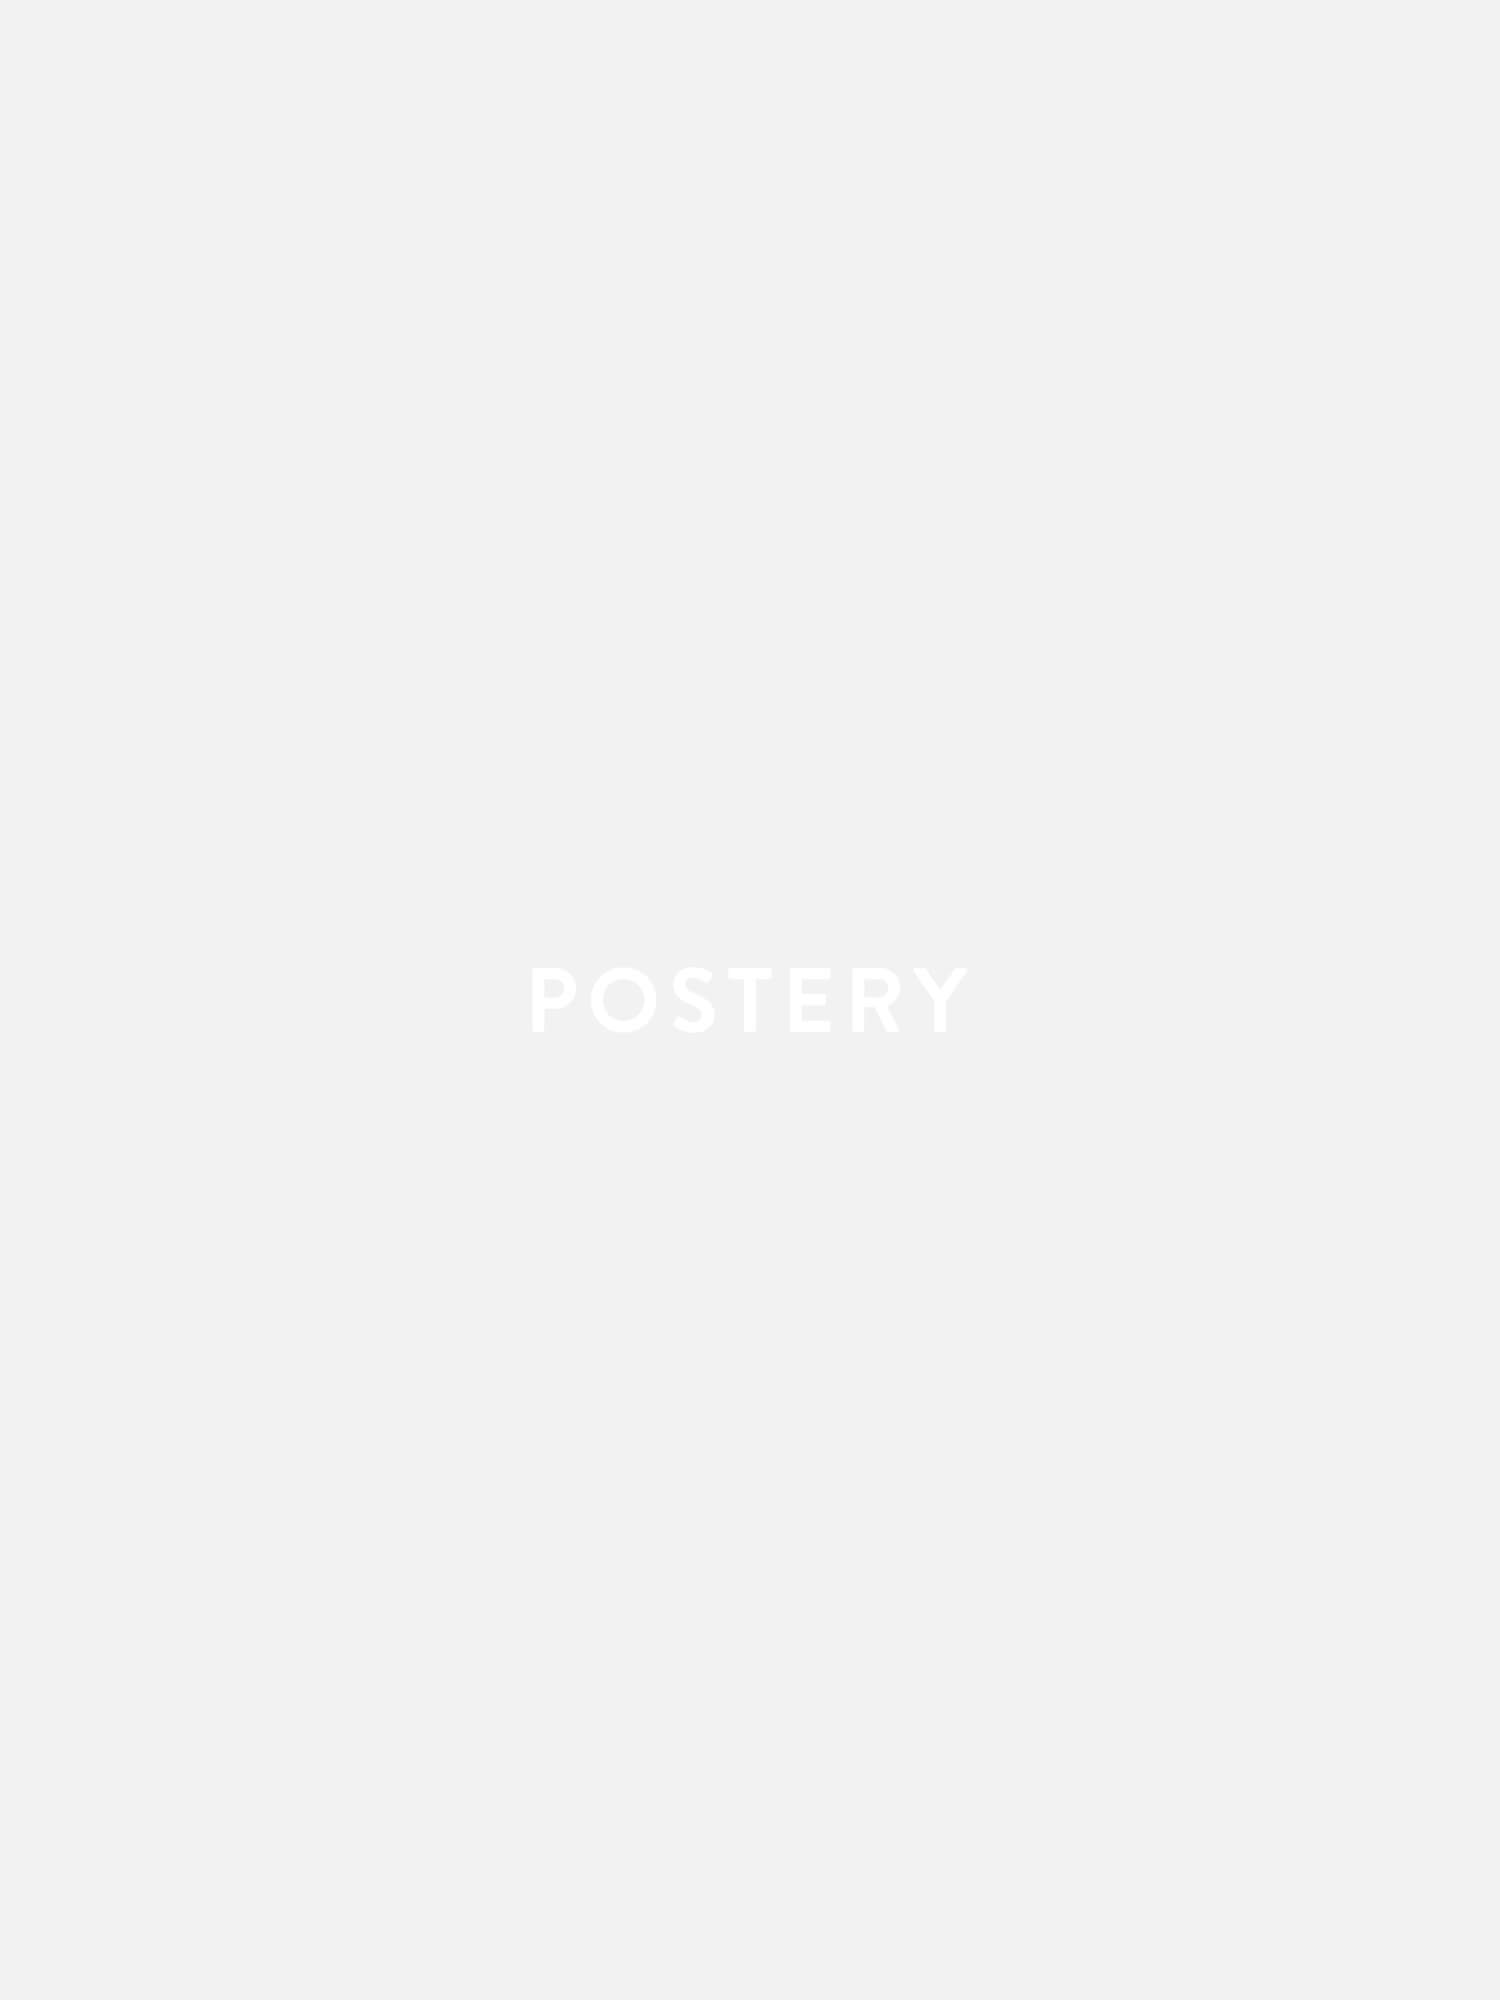 Sleeping Teddy Poster